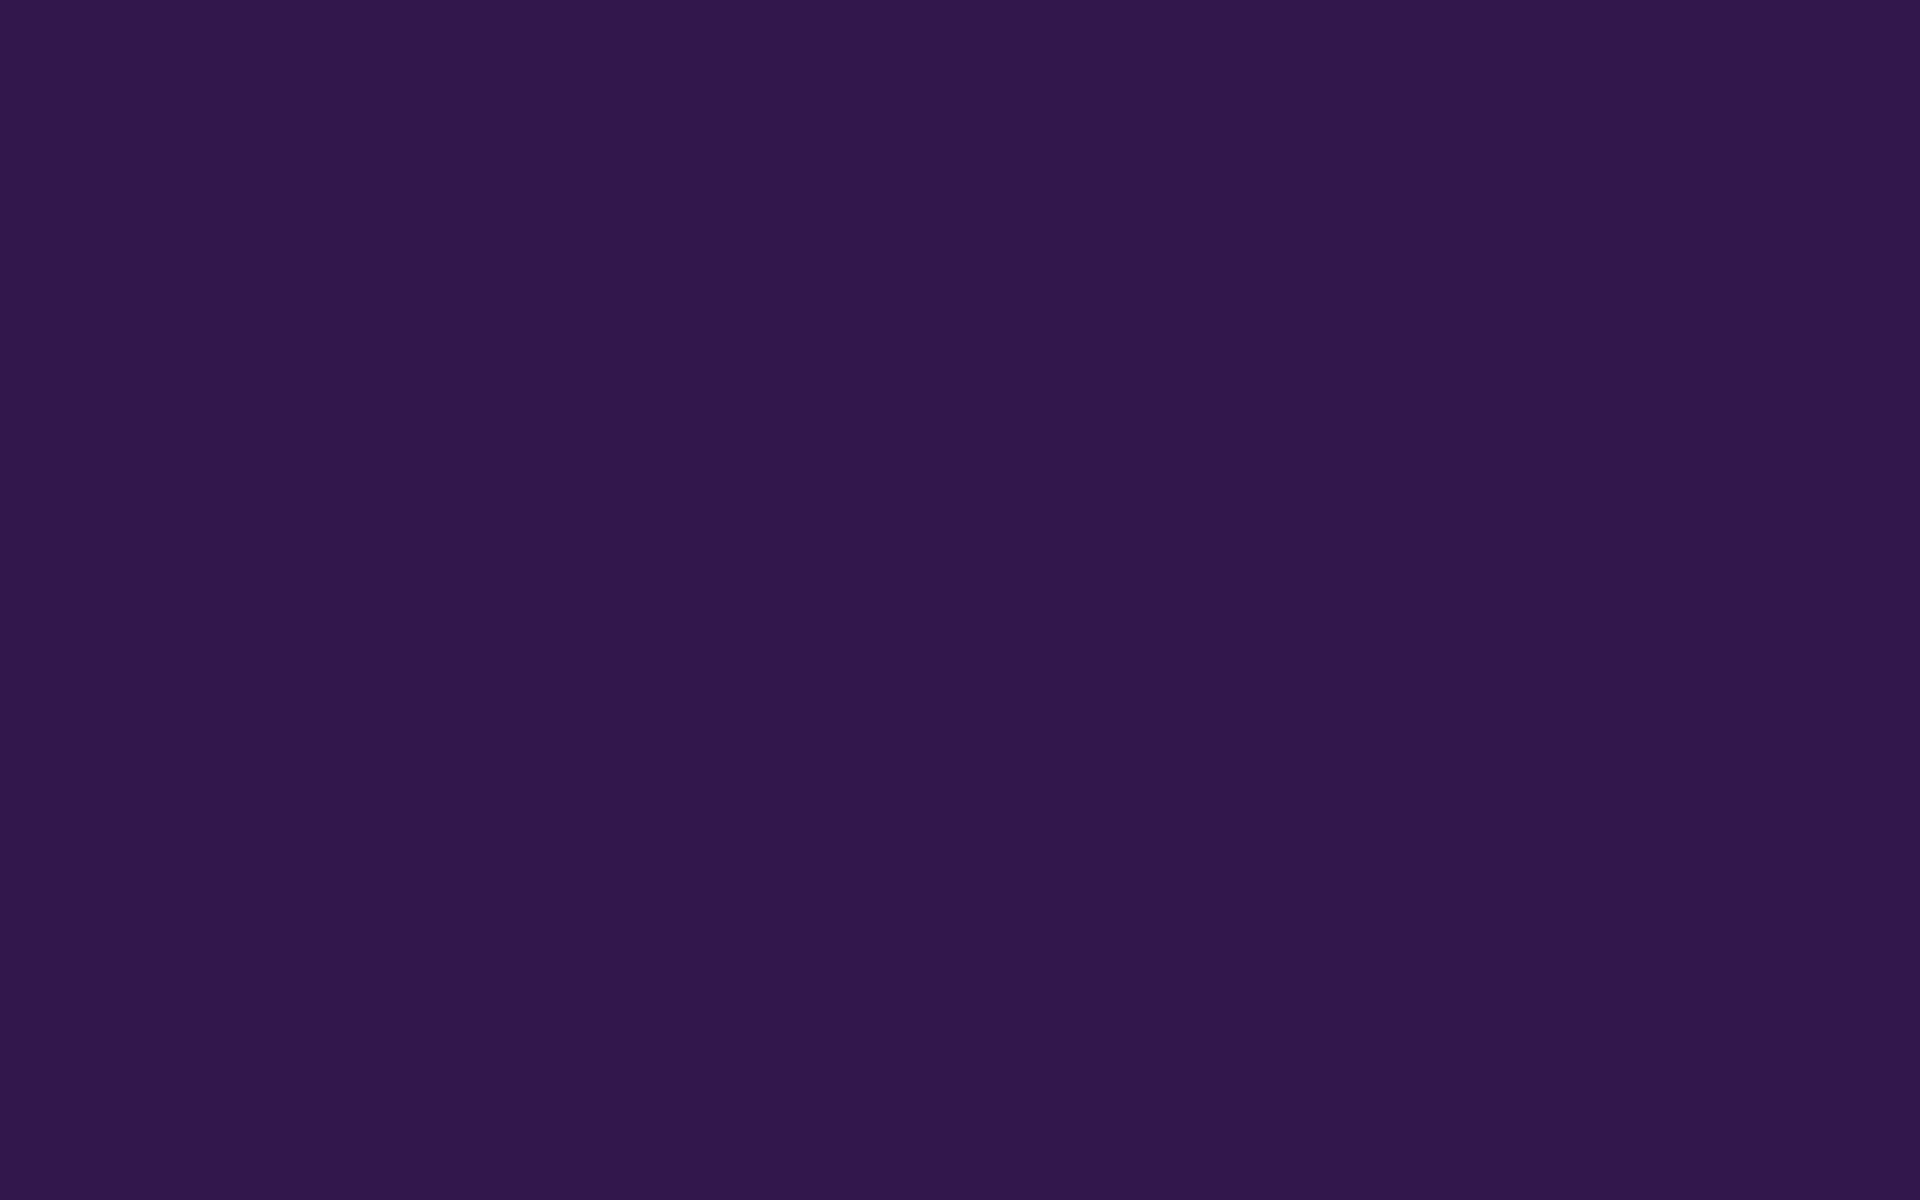 1920x1200 Russian Violet Solid Color Background